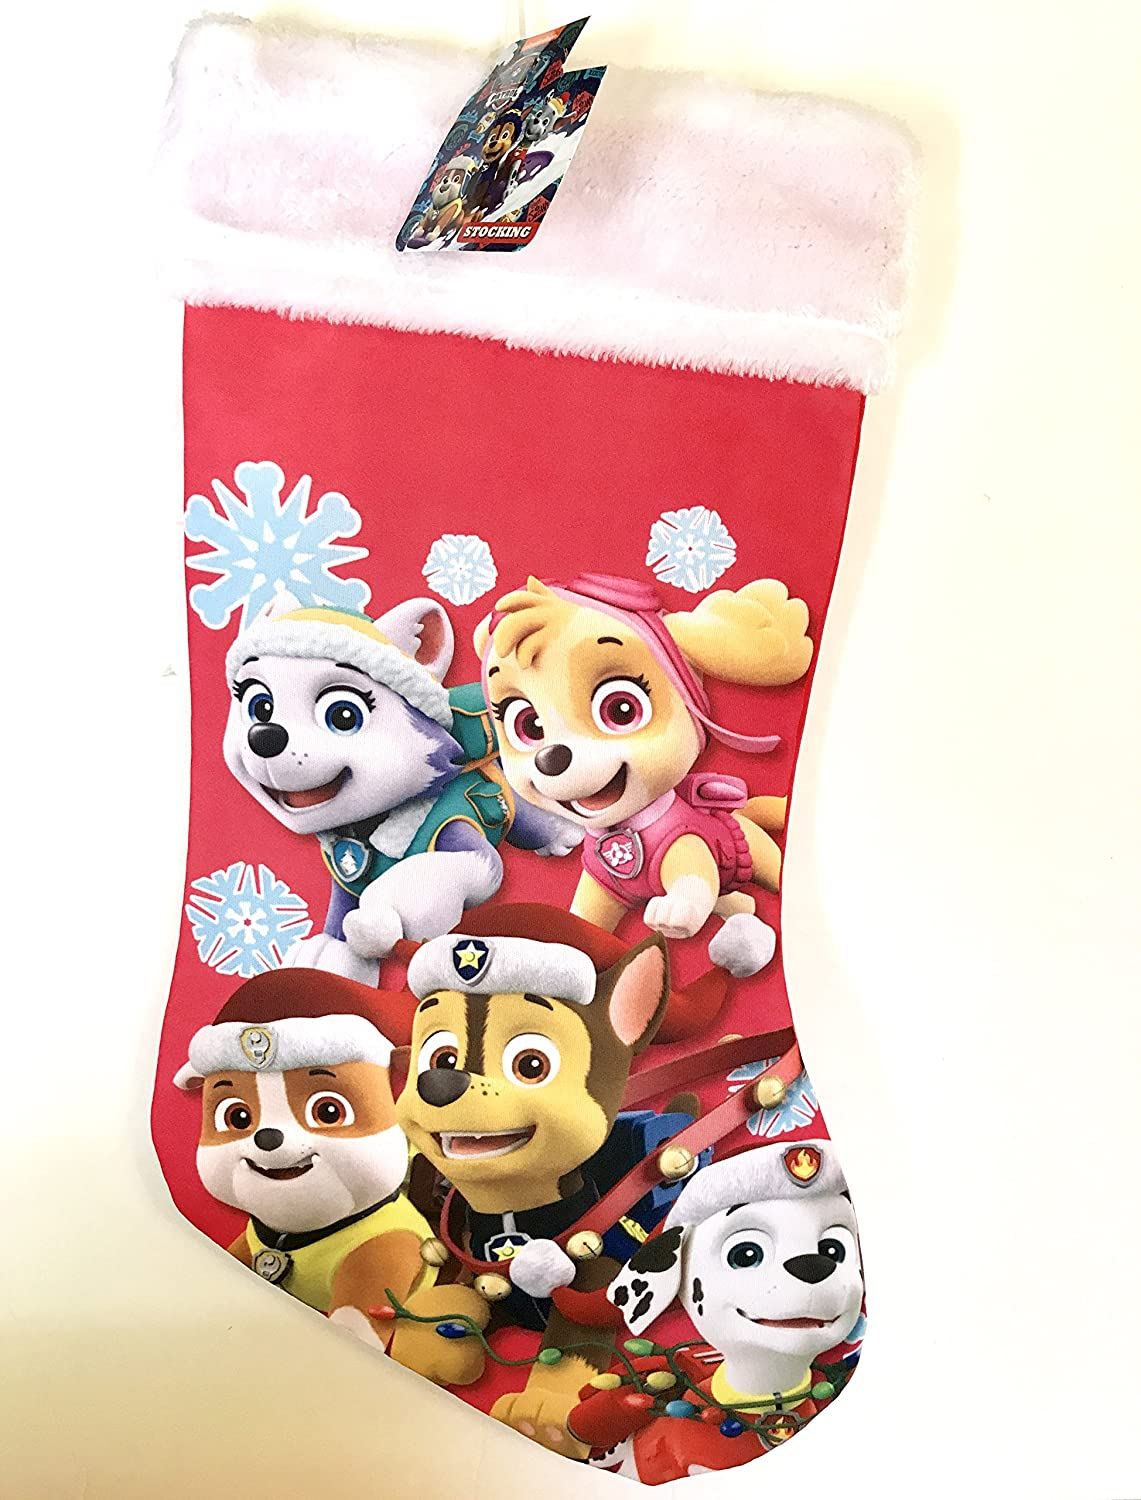 Paw Patrol Team Christmas Stocking!